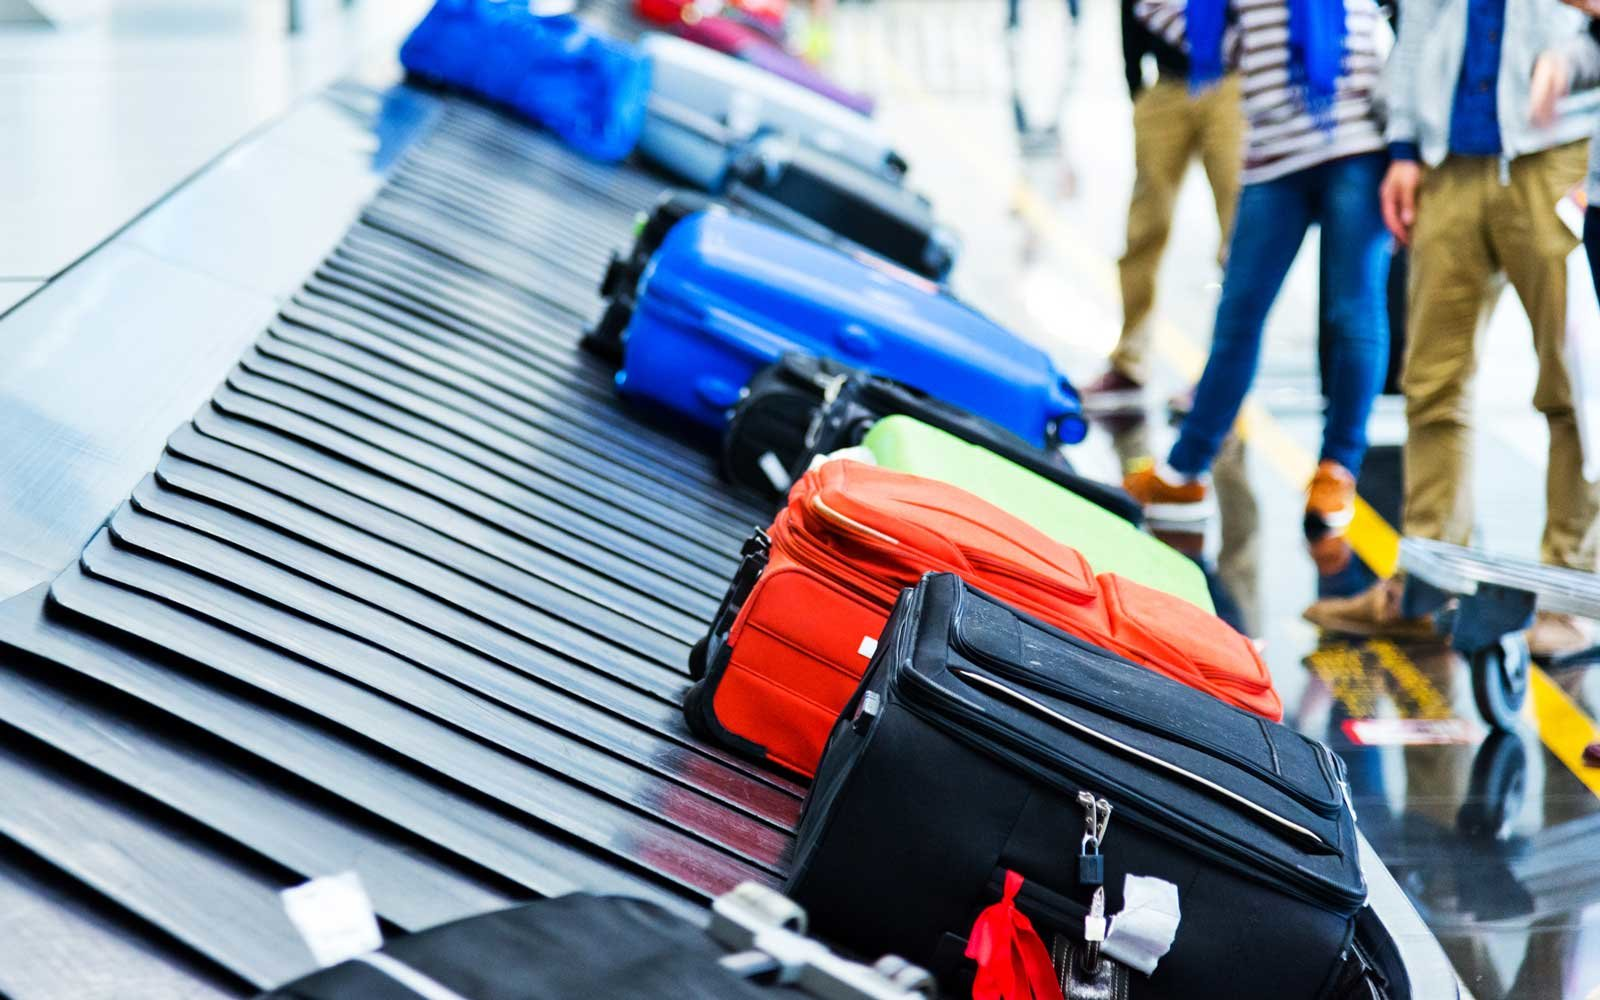 Luggage at baggage claim in airport